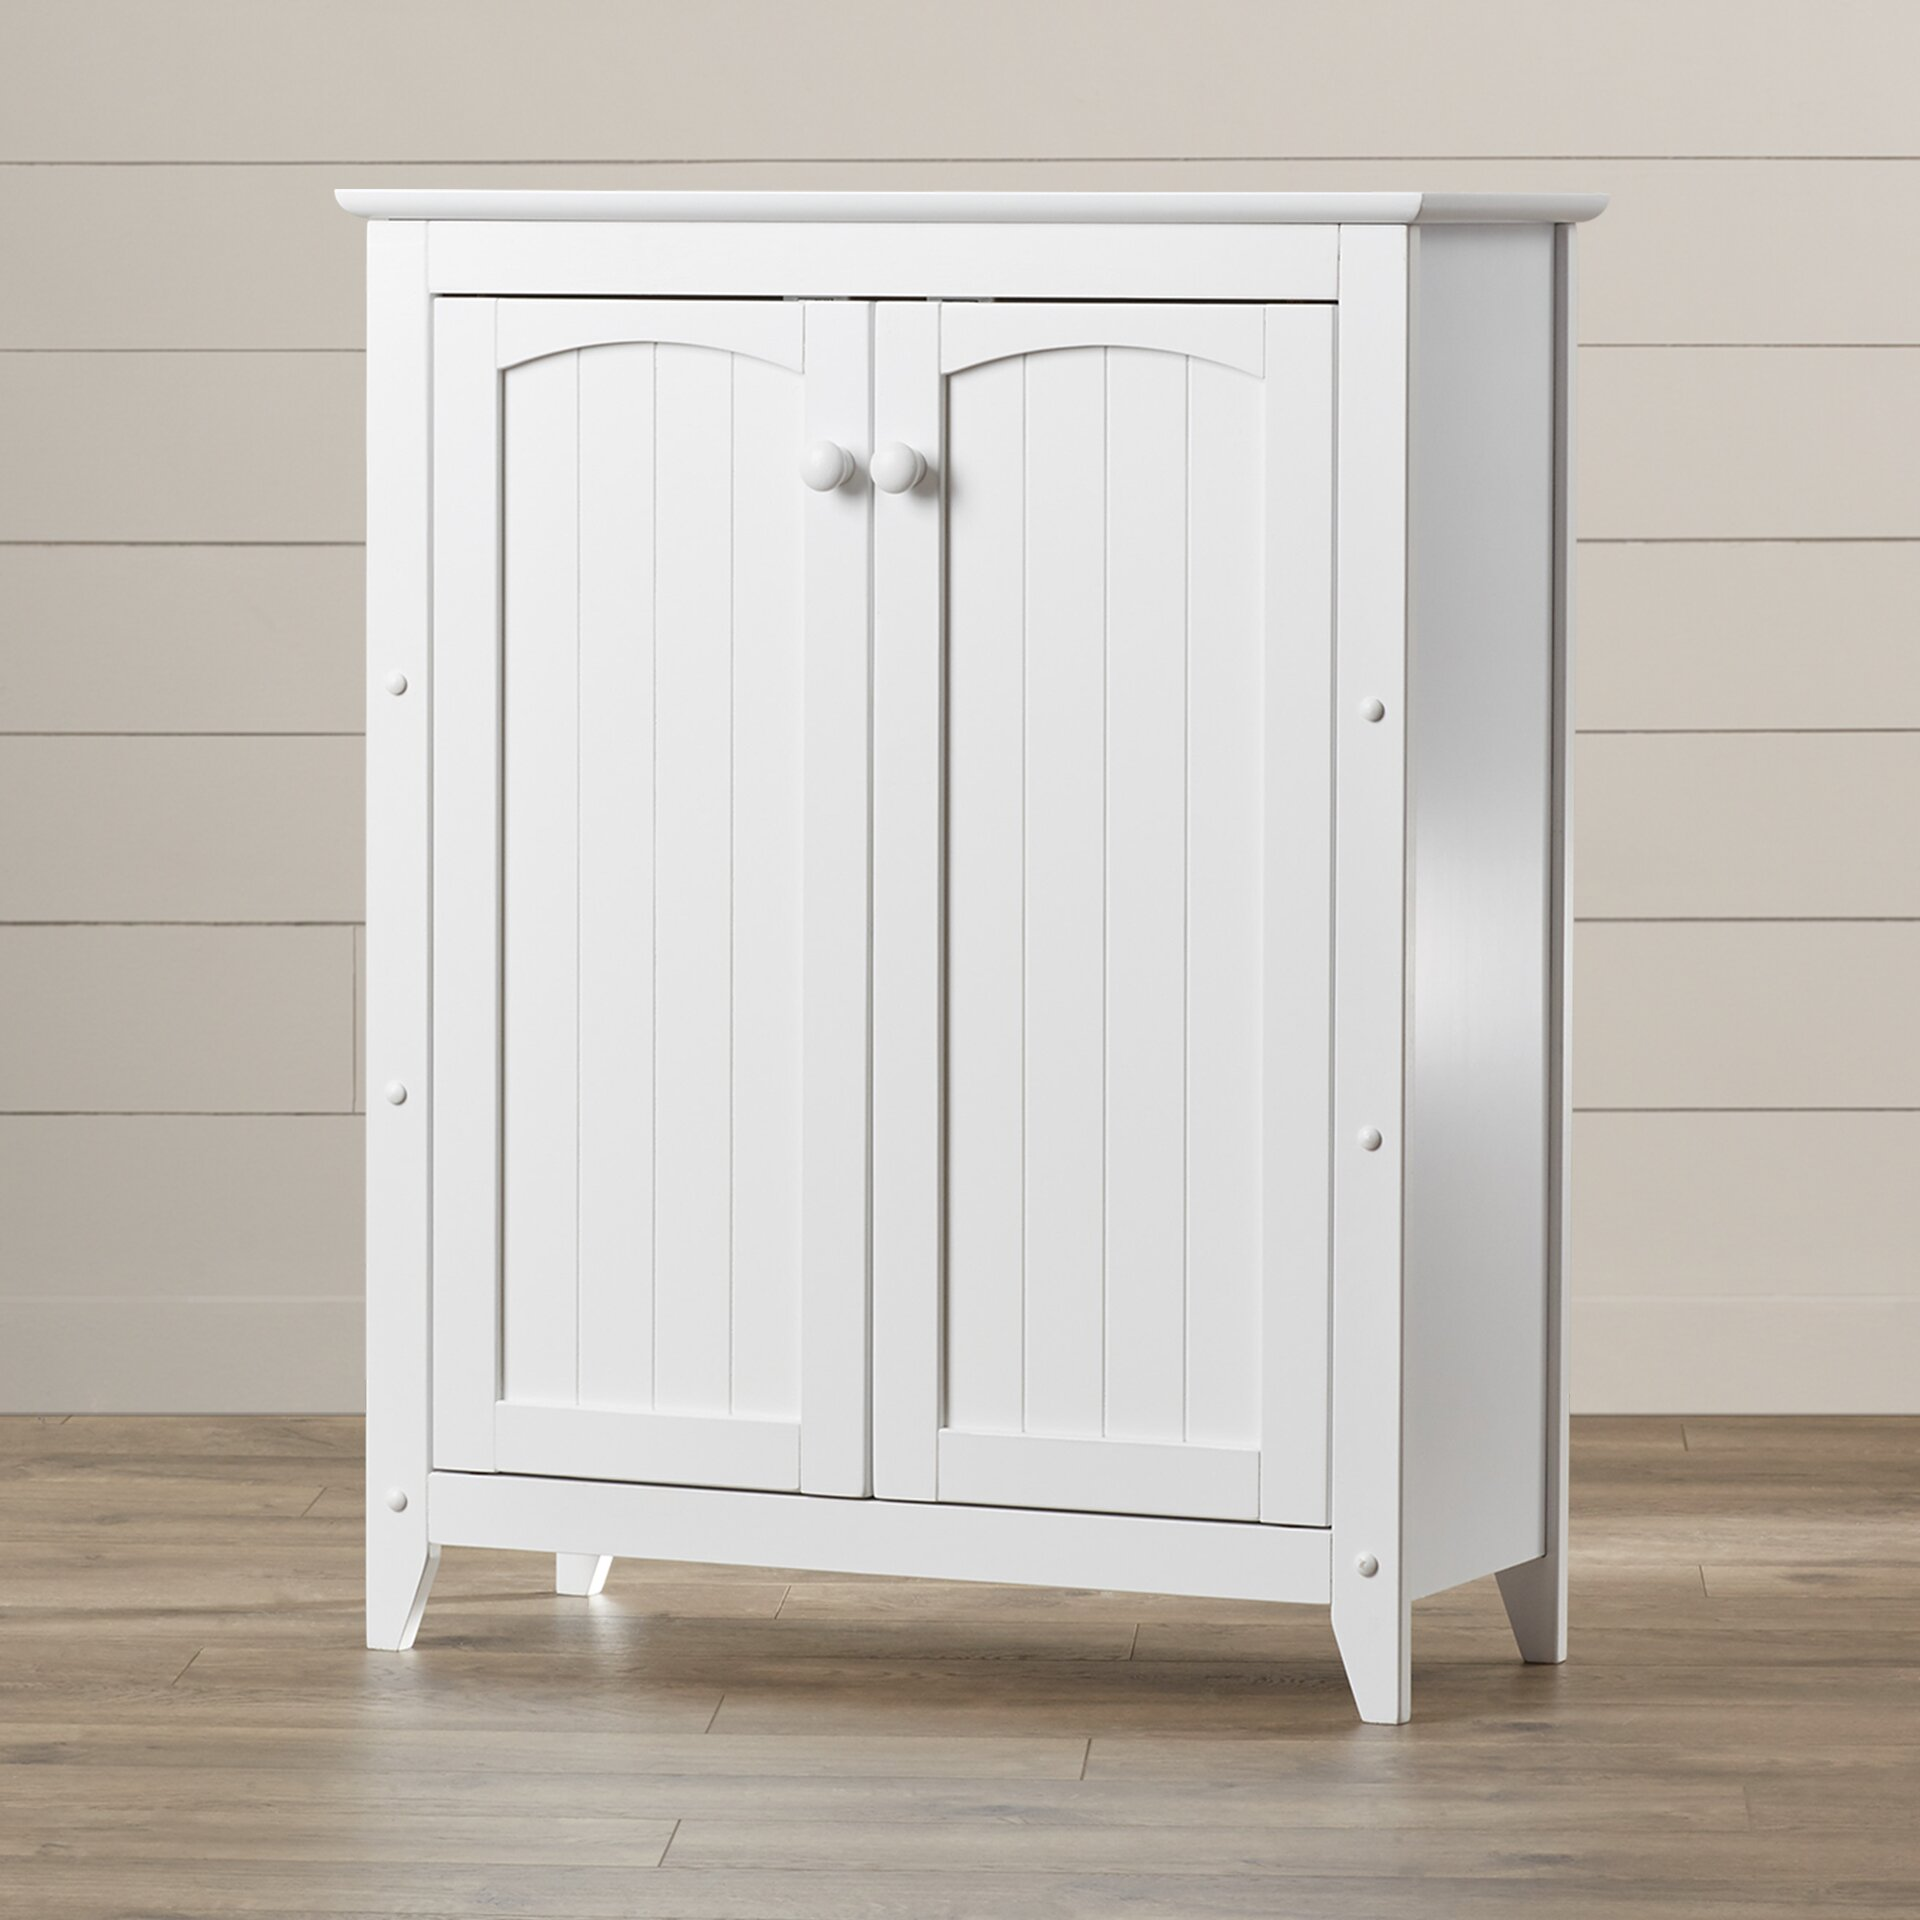 August grove 2 door cabinet reviews wayfair for One day doors and closets reviews